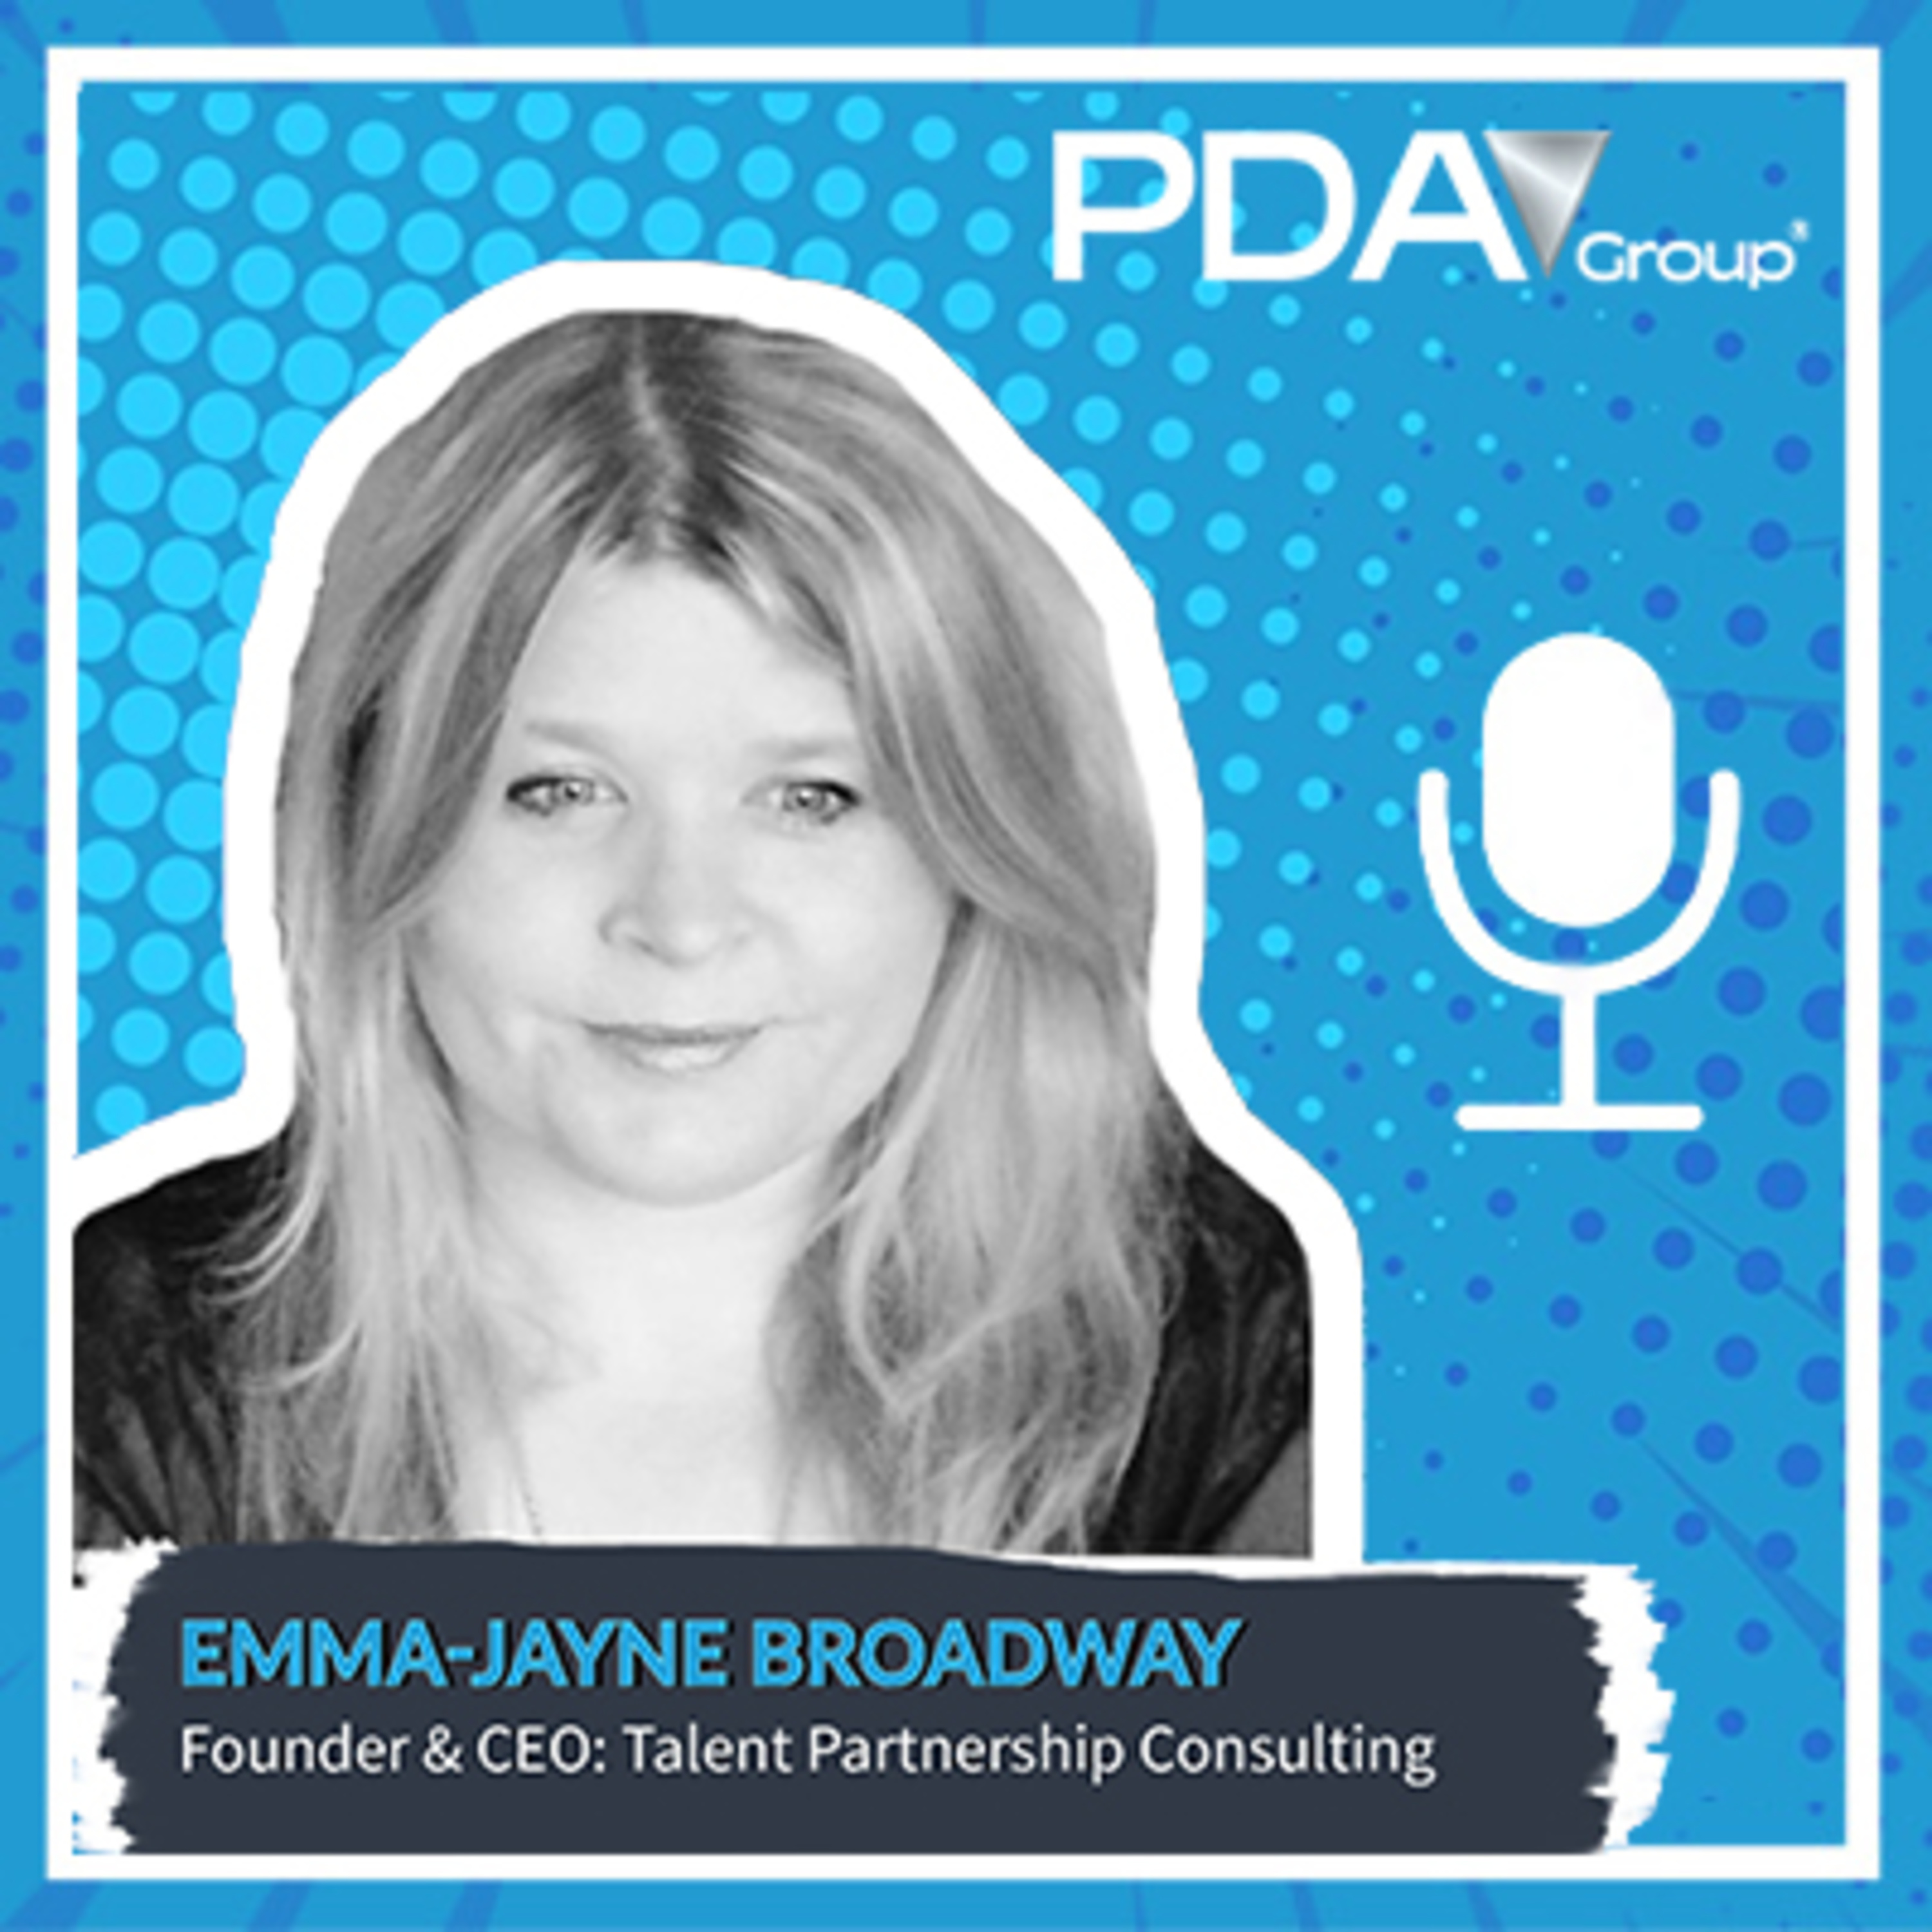 Expert Talk Sales: The Power of Recruiting with Emma-Jayne Broadway